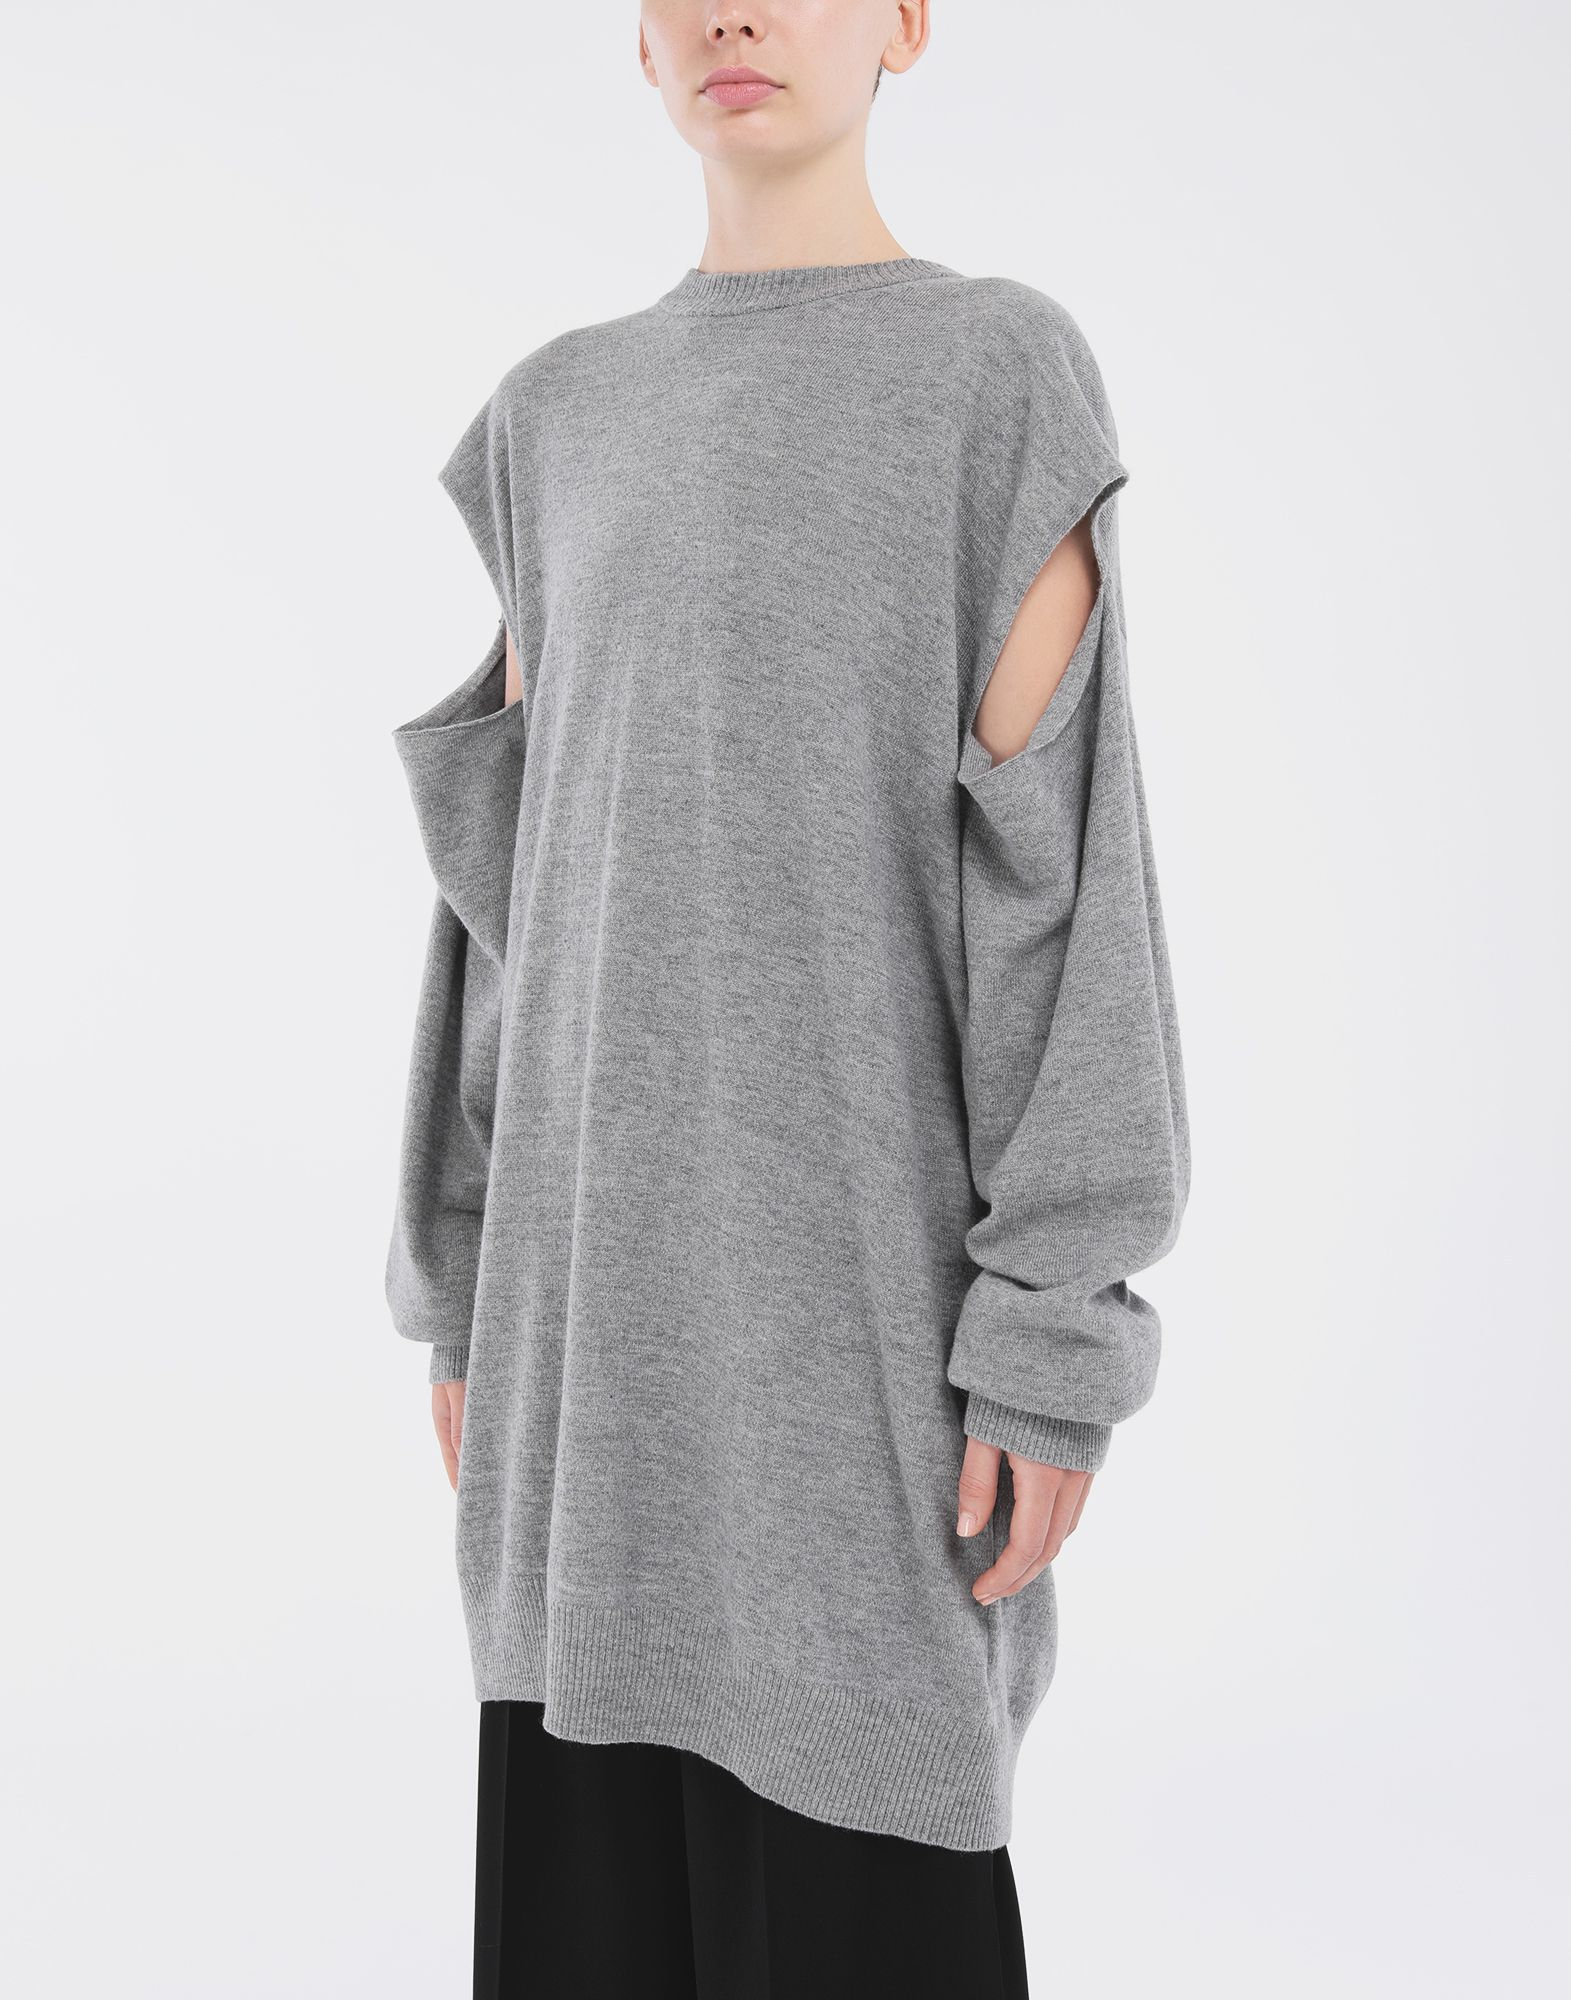 MAISON MARGIELA Sweater cut-out dress Short dress Woman r